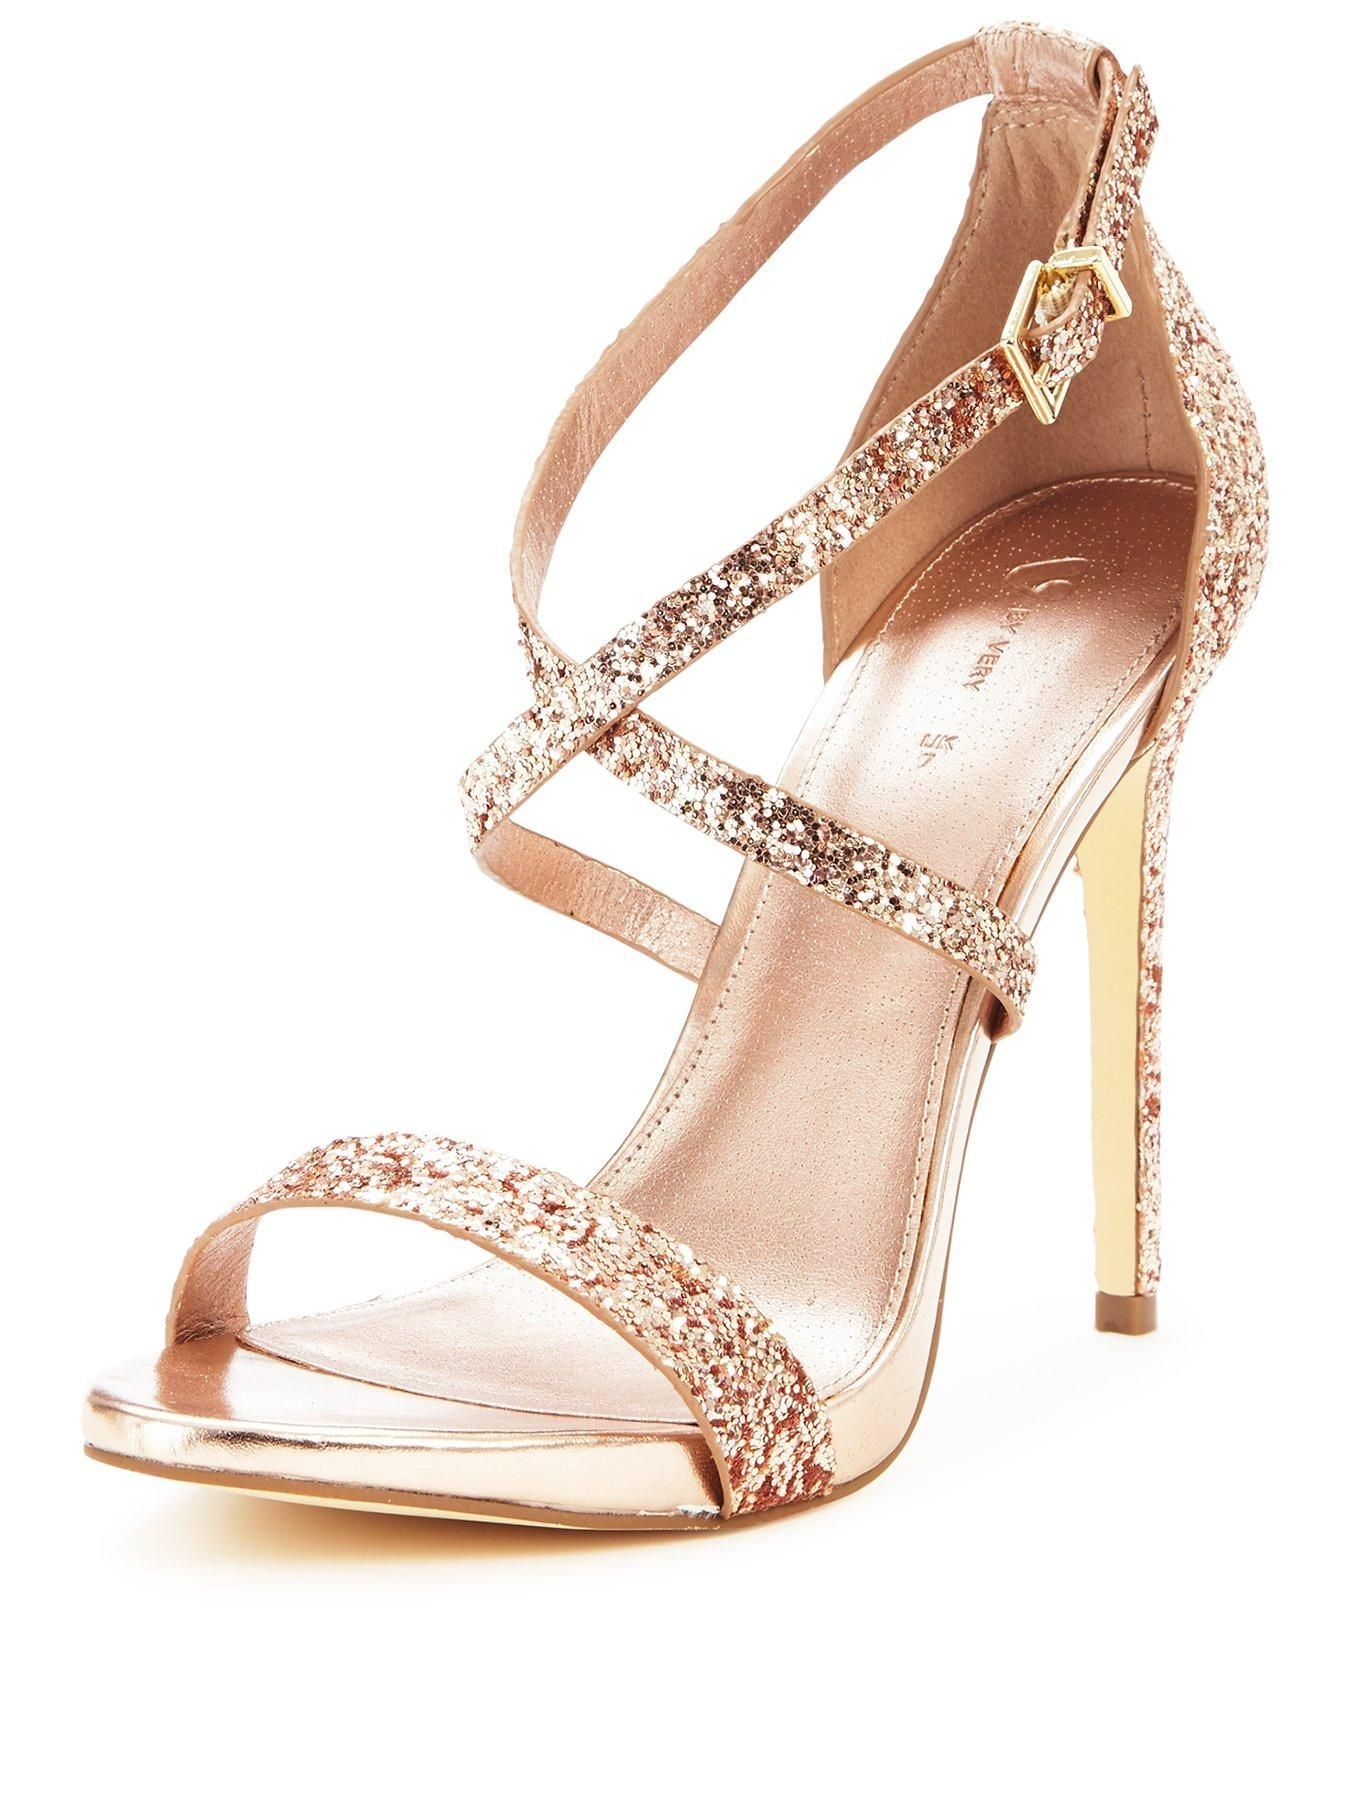 V by Very Caprice Glitter Heeled Sandals - Rose Gold Gorgeously girly and super glam - these Caprice glitter heeled sandals from V by Very are a must for girls who want to turn heads! Covered top to toe in rose gold glitter and featuring a stomp-worthy stiletto heel, they create jaws-to-the-floor impact at any event! Styling Ideas Try matching your heels to your clutch for added polished points!